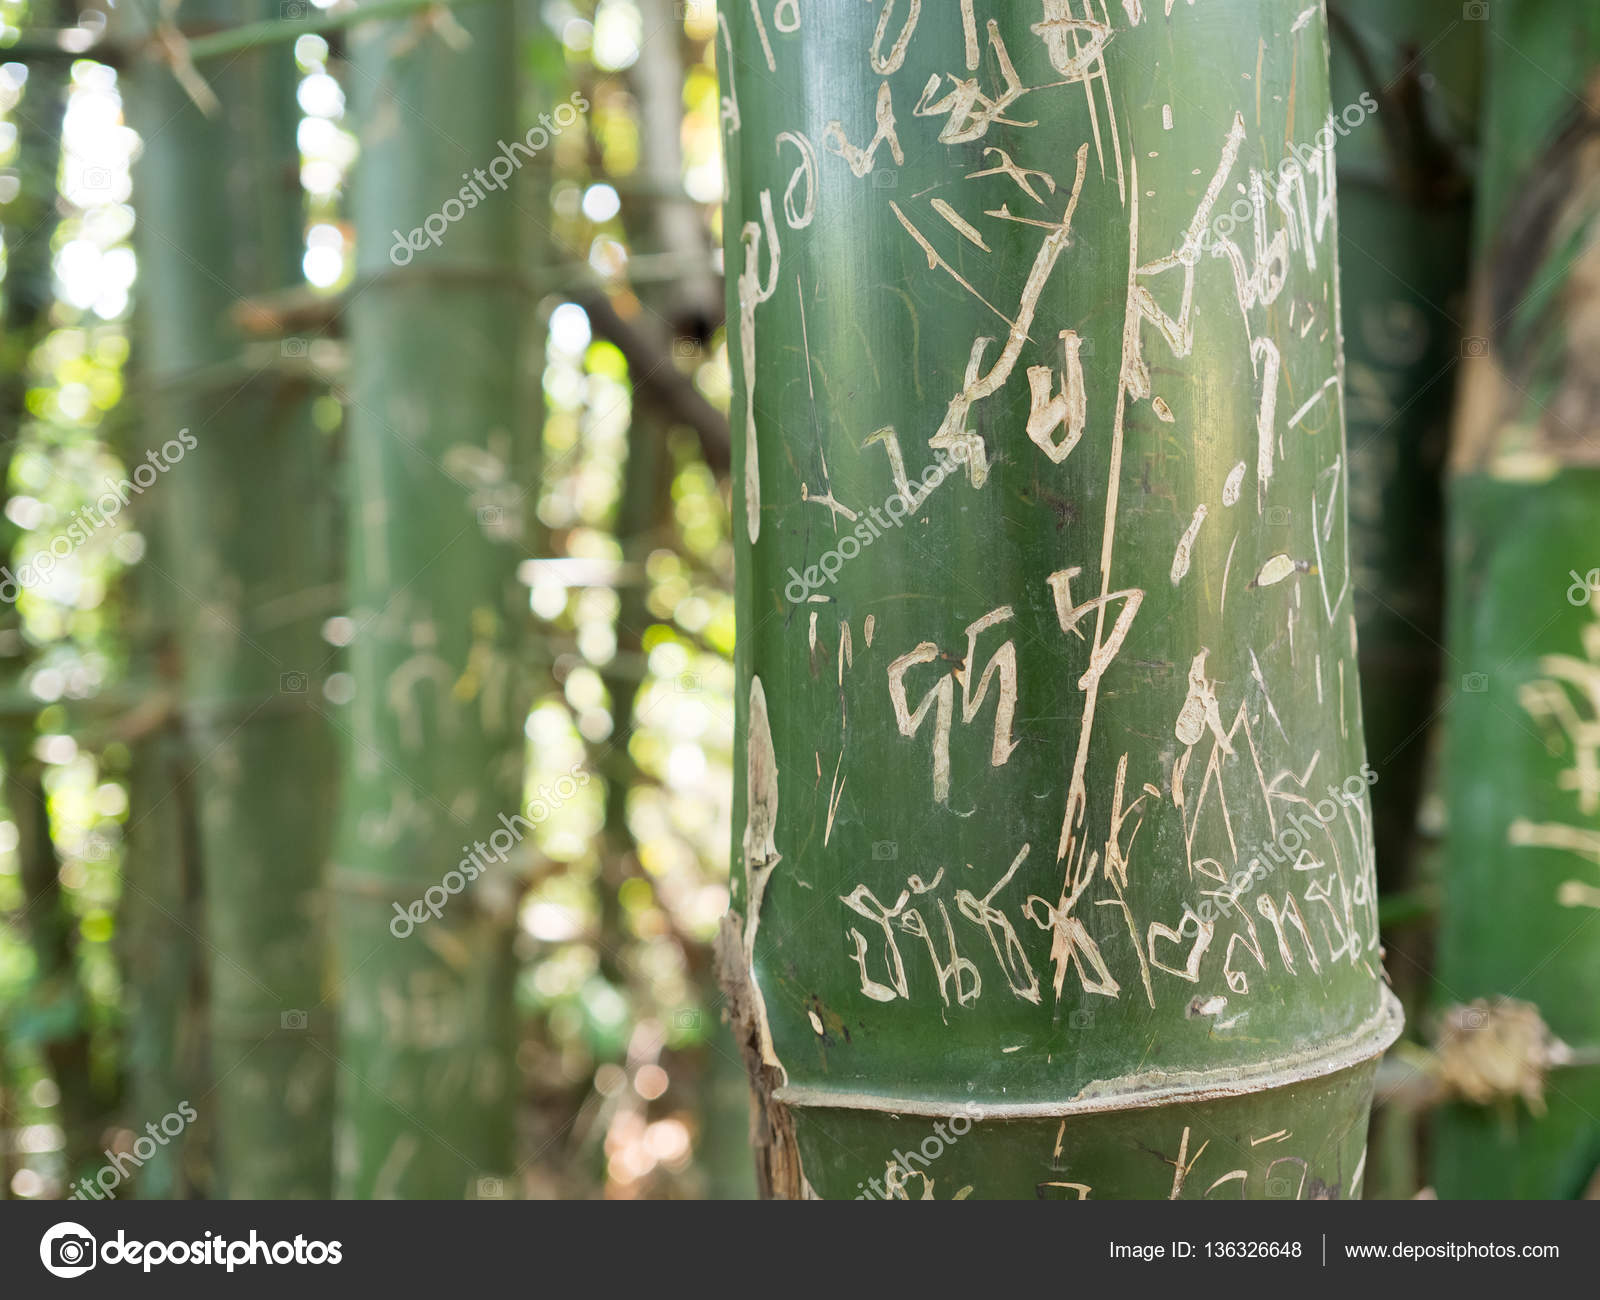 Picture of: Bamboo Tree With Drawing And Writing Stock Photo C Sevendeman 136326648